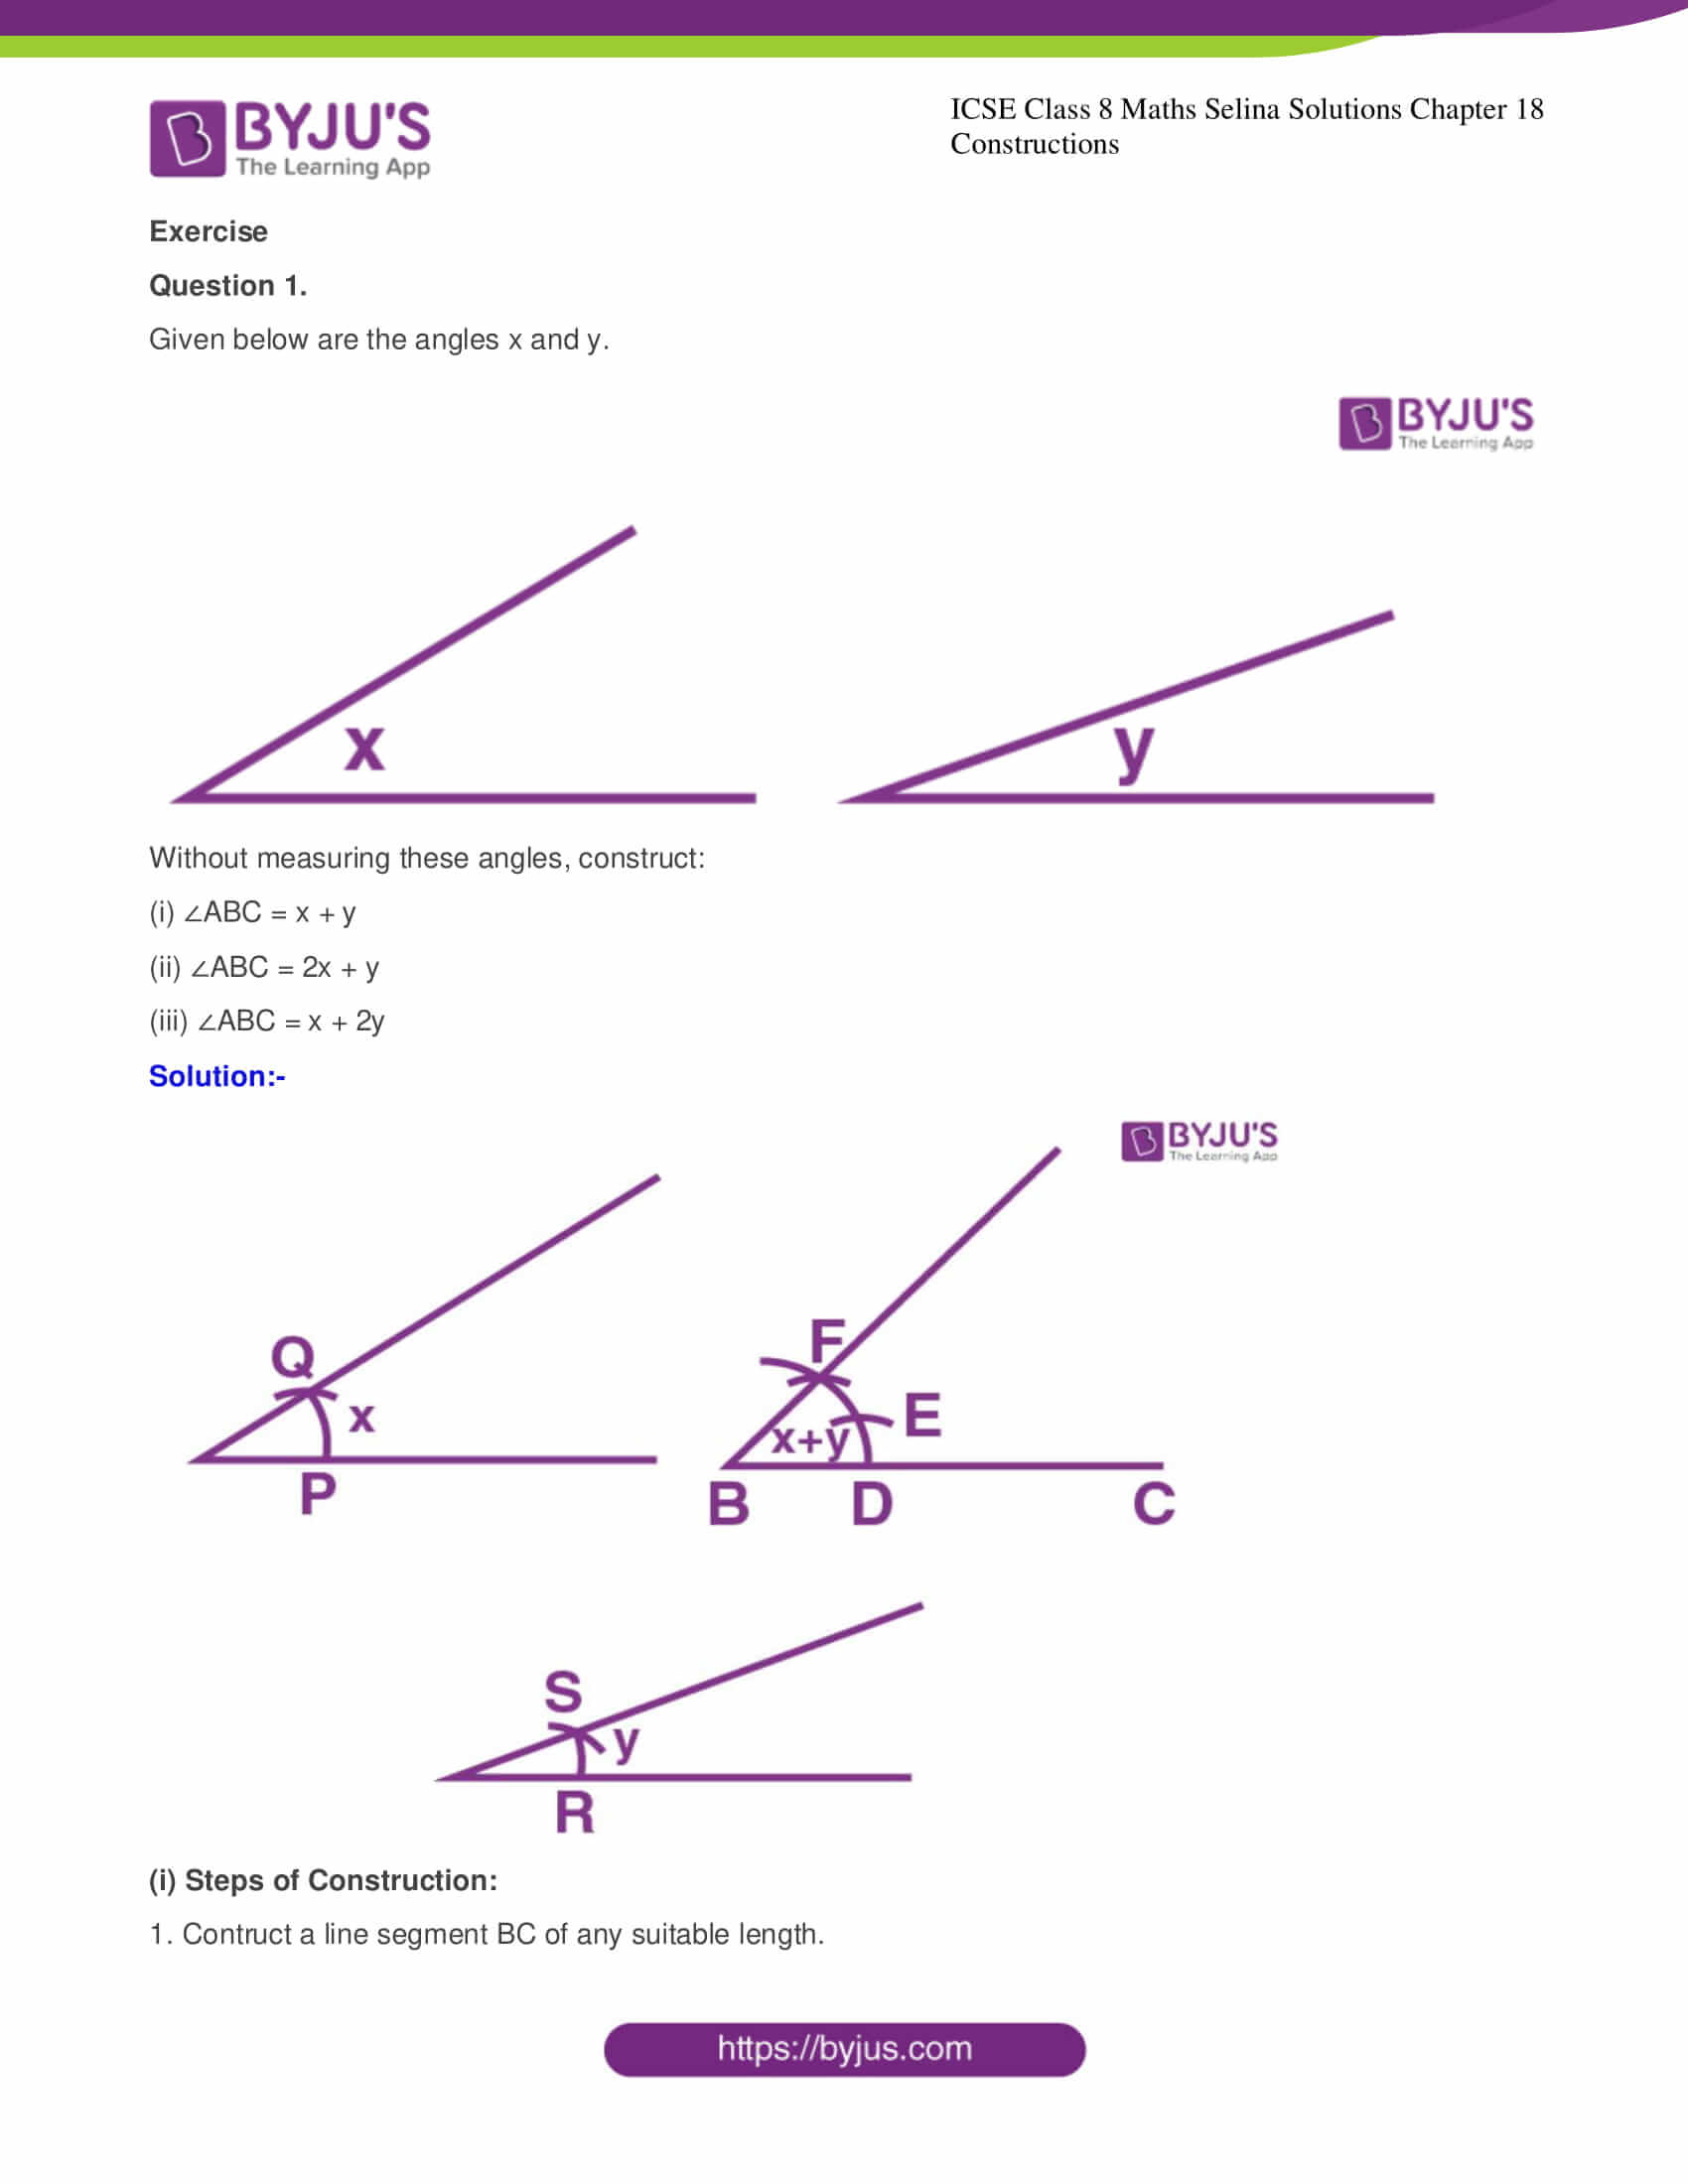 icse class 8 maths may3 selina solutions chapter 18 constructions 01